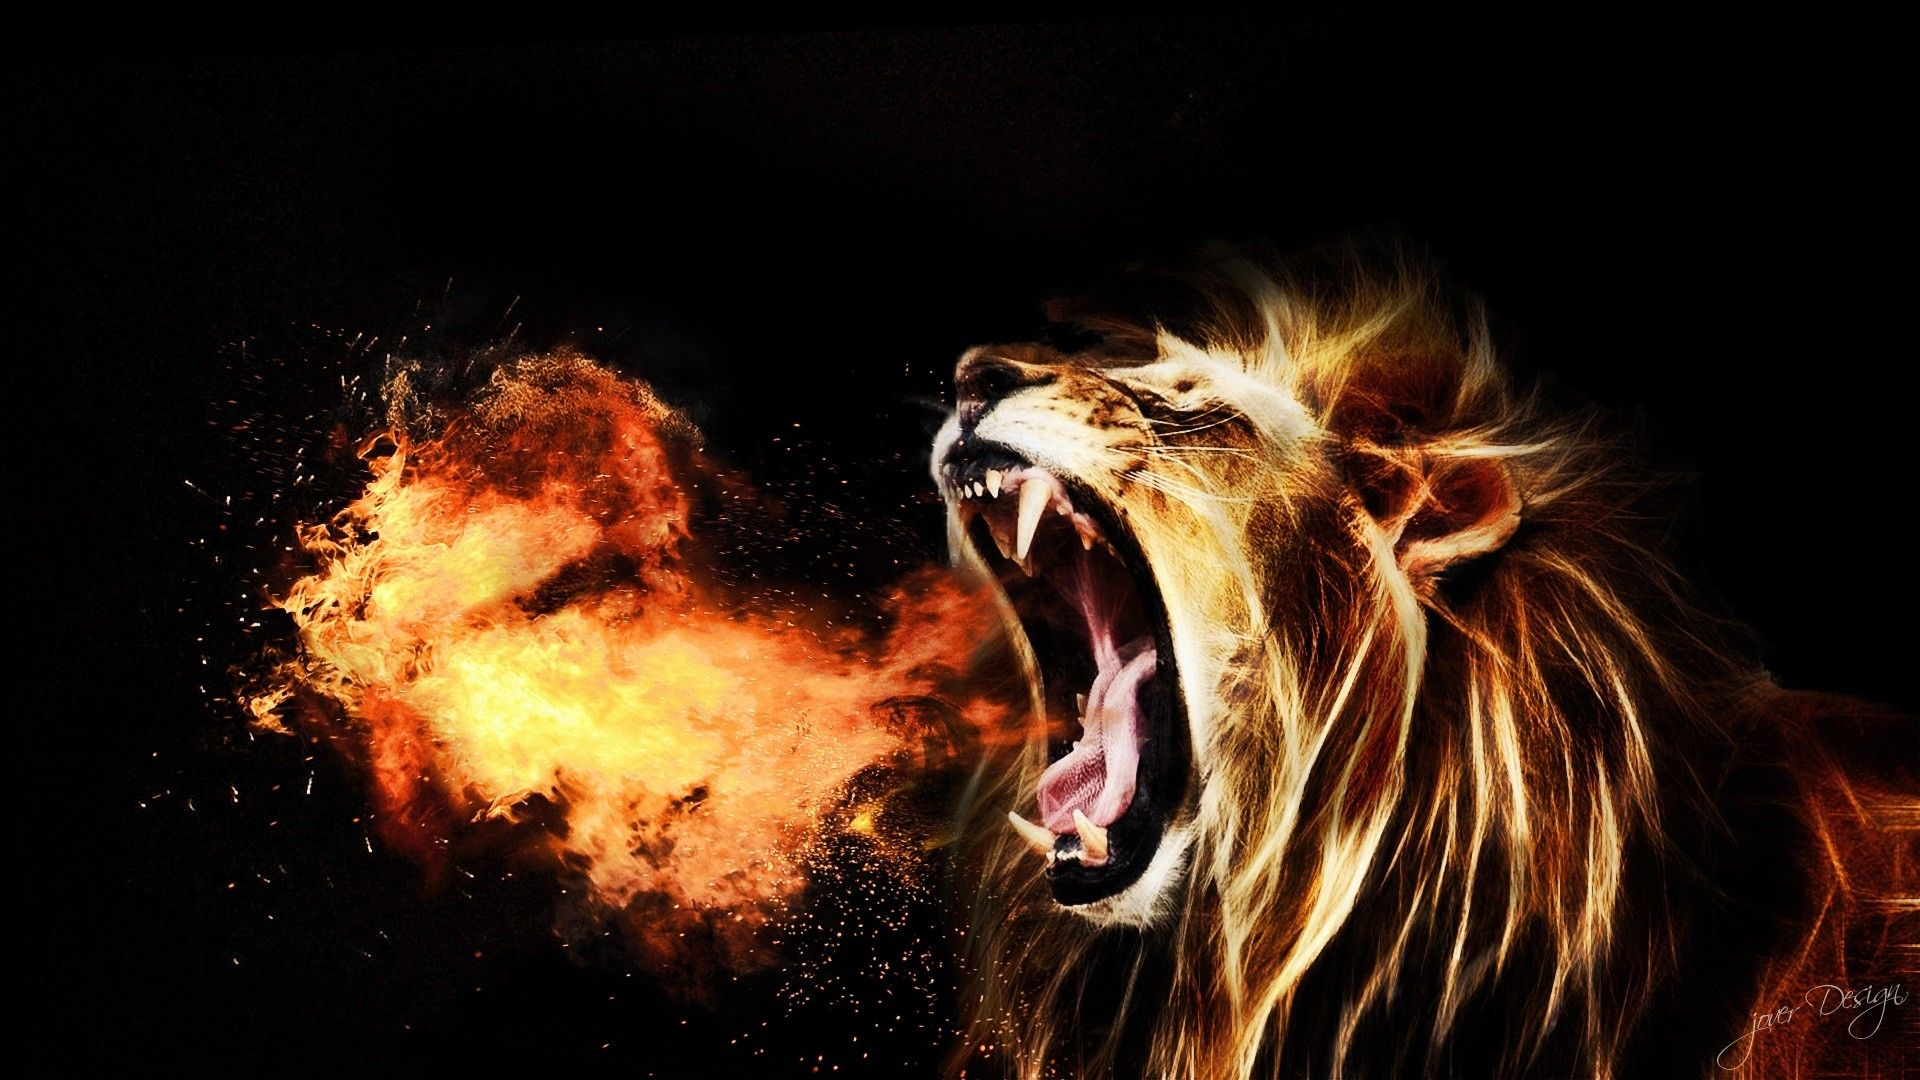 Best 25 Lion Hd Wallpaper Ideas On Pinterest: Lion Roar Free Download HD Wallpapers 3308